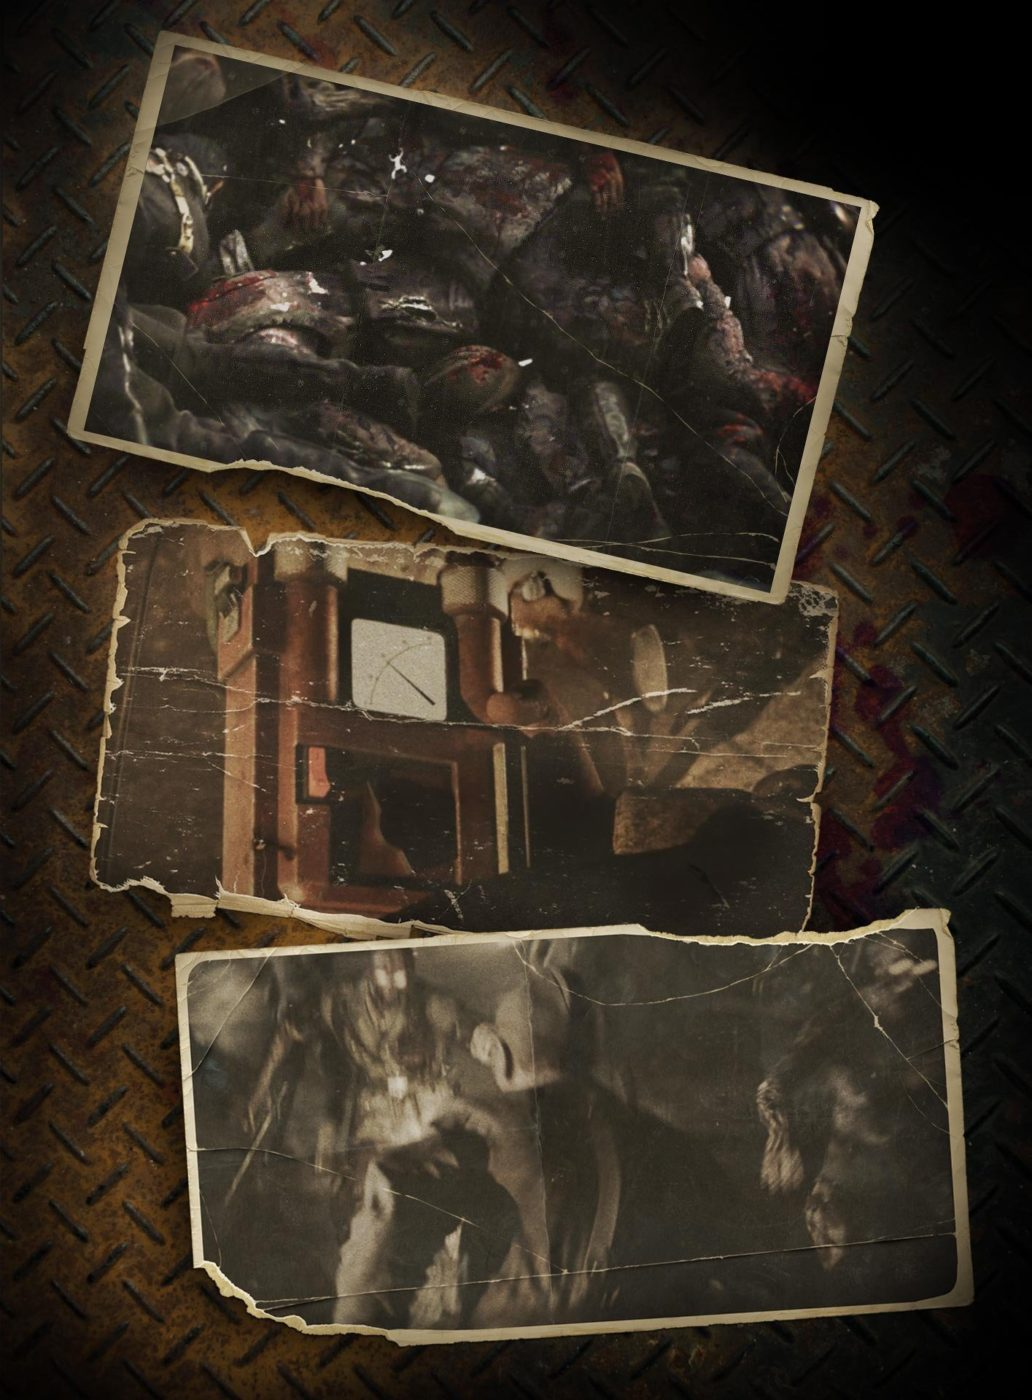 Black Ops Cold War Zombies Images Uncovered Related News Coming This Monday Mp1st